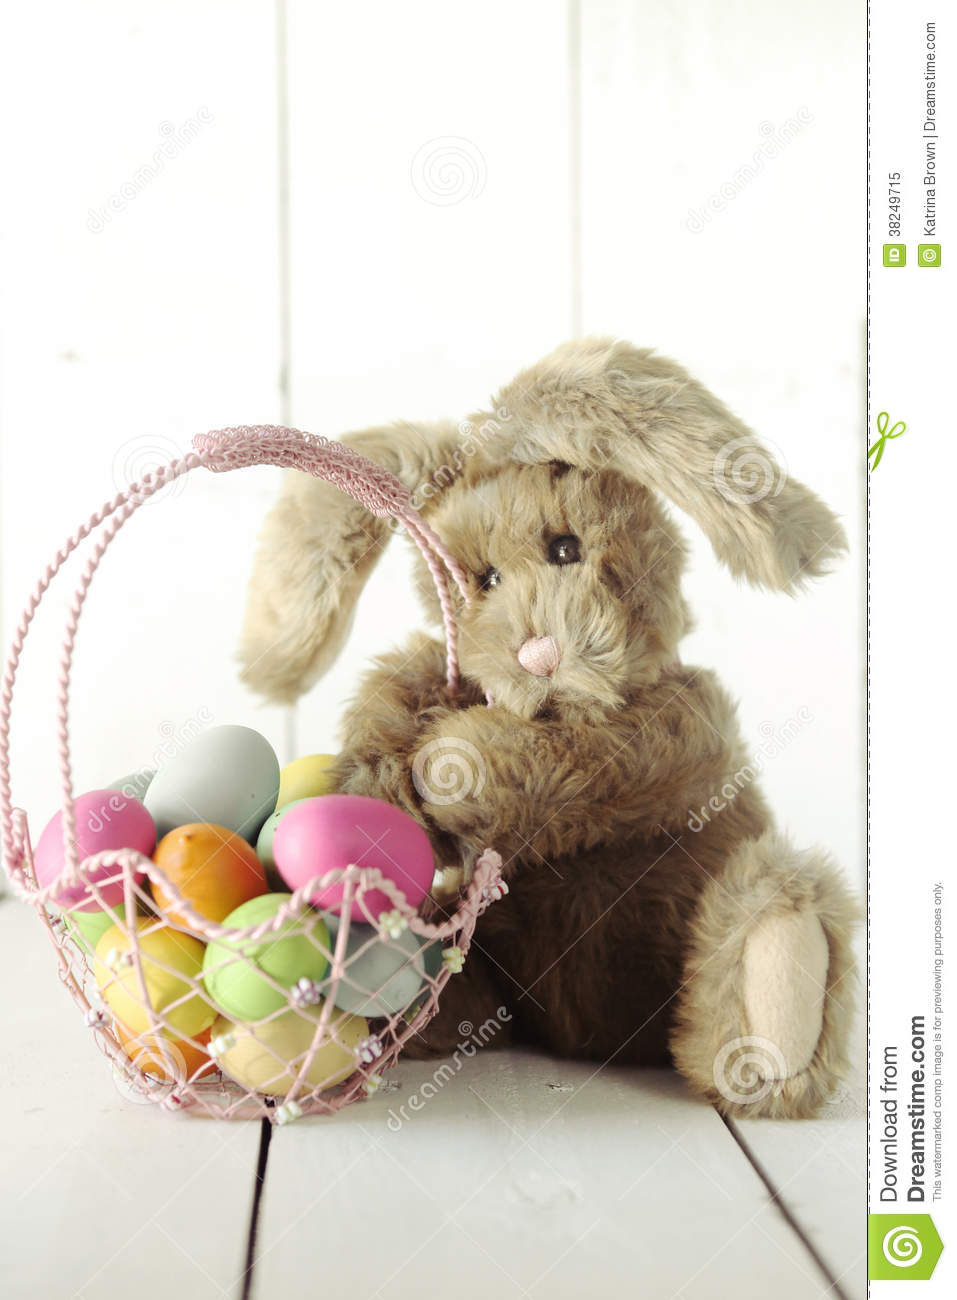 Pasen Bunny Themed Holiday Occasion Image